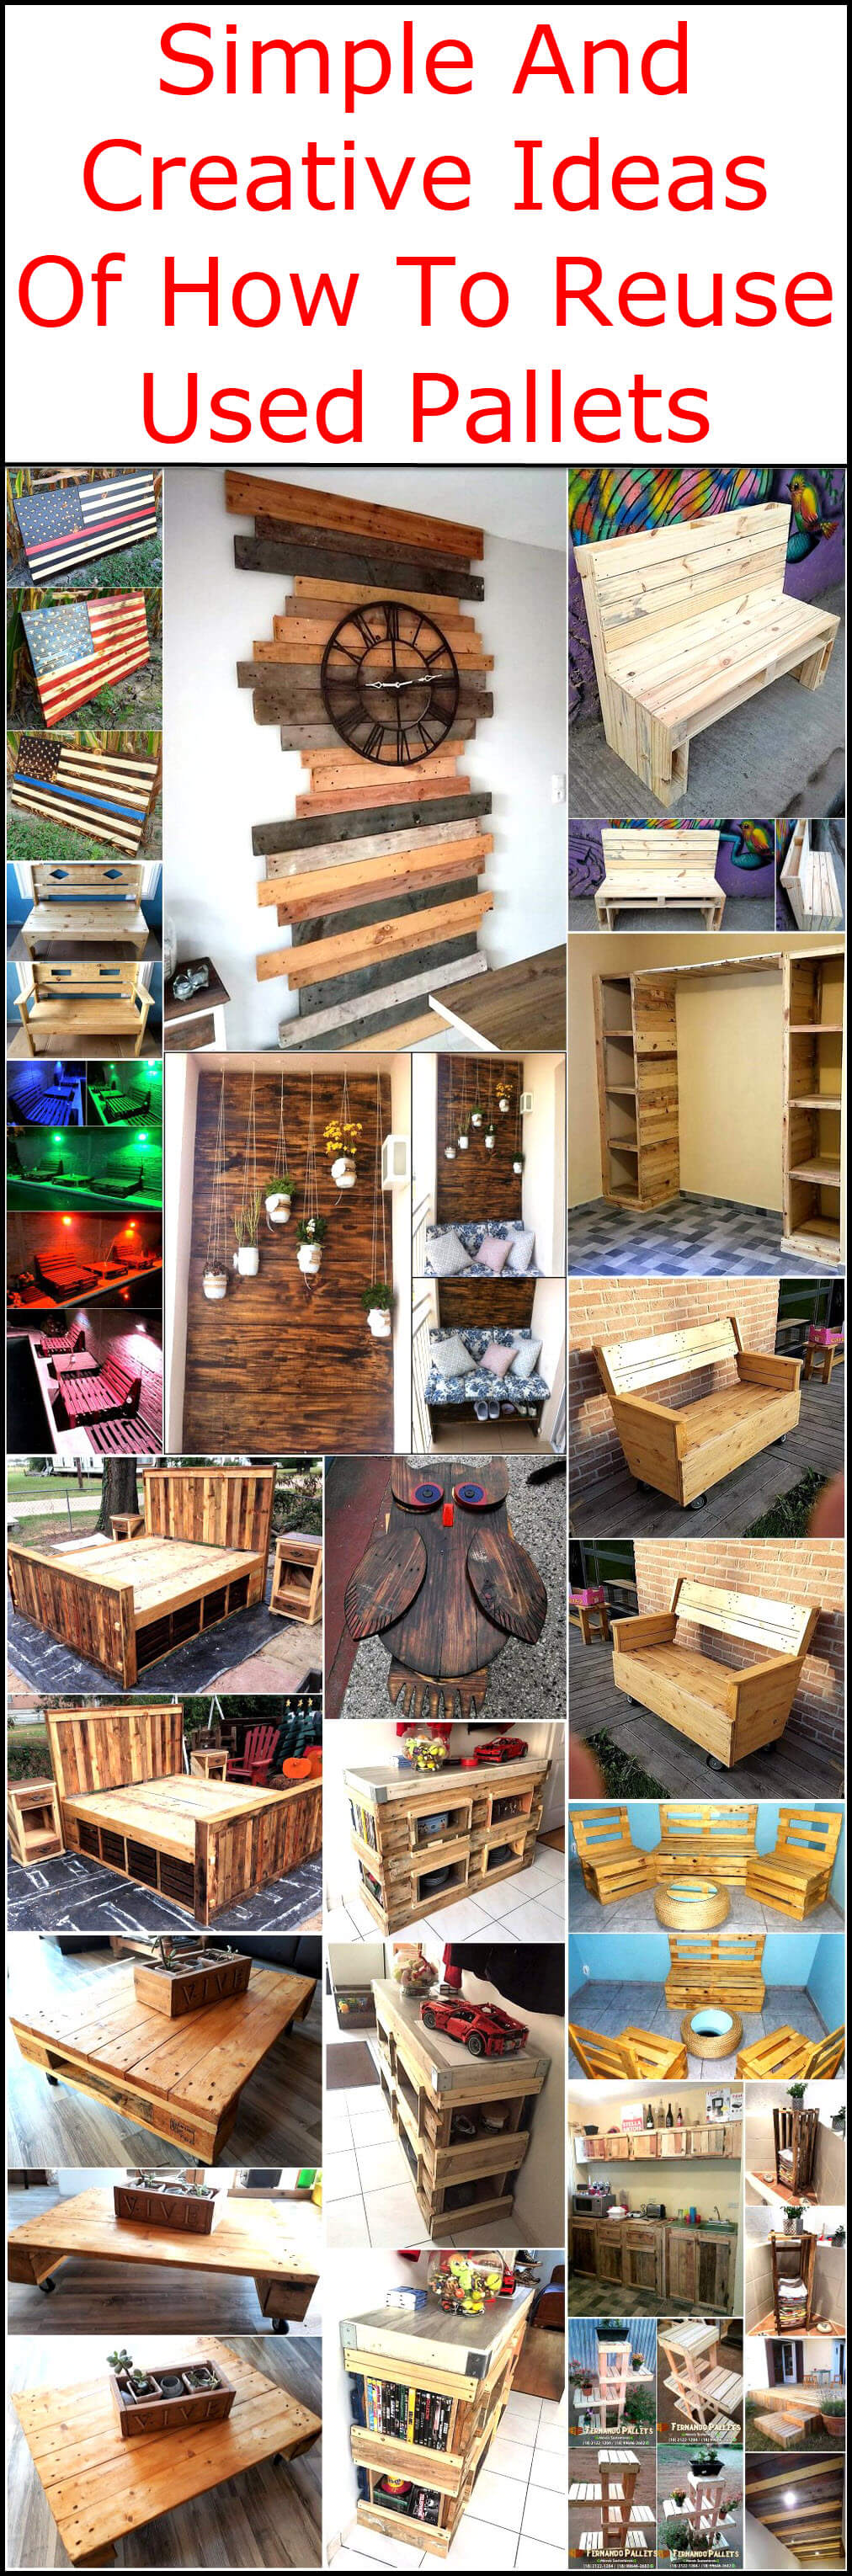 Simple And Creative Ideas Of How To Reuse Used Pallets Pallet Ideas